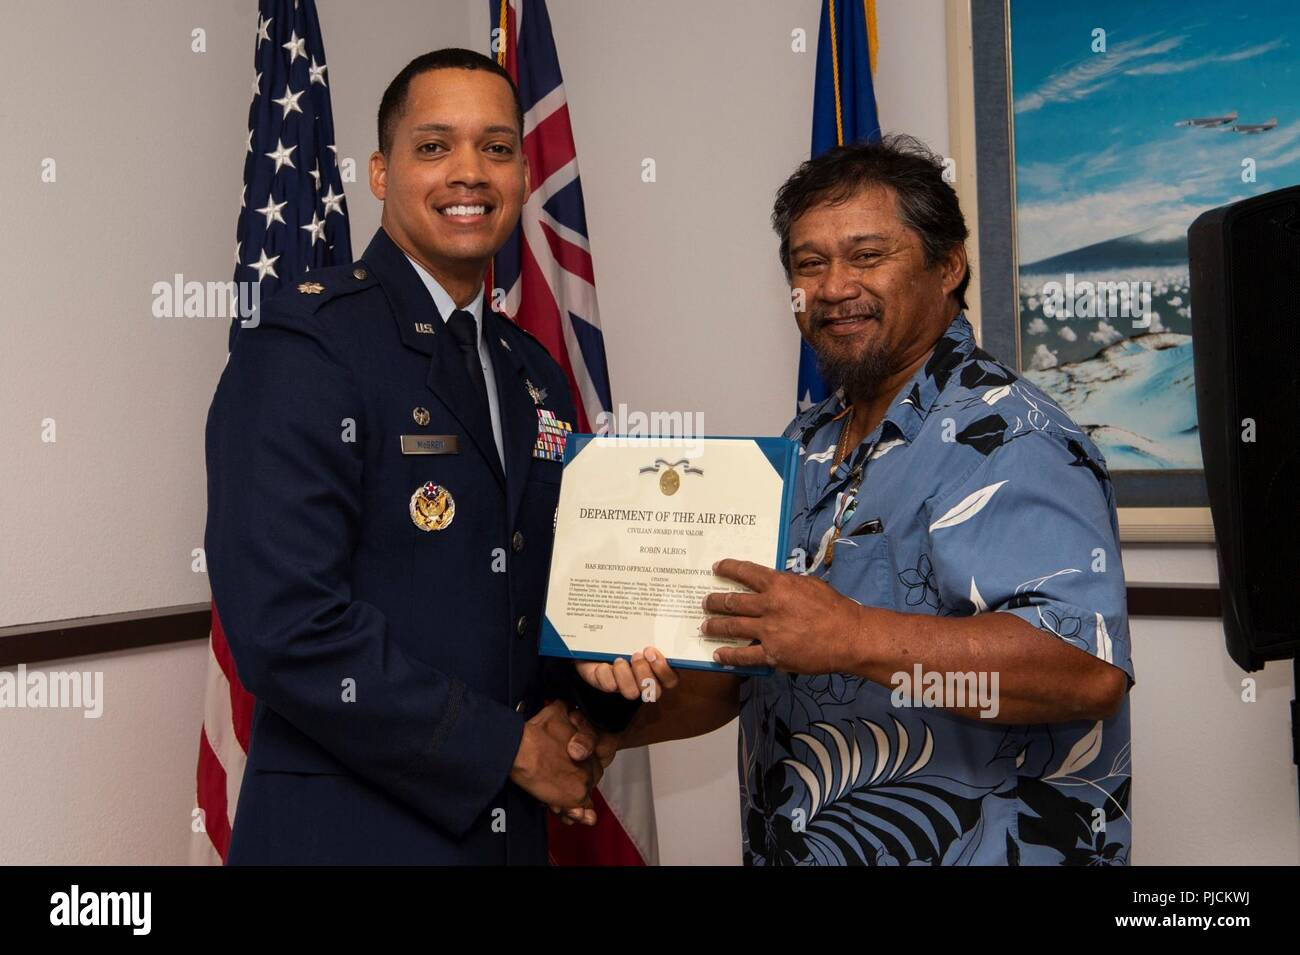 Lt. Col. Wade McGrew, 21st Space Operations Squadron commander, presents the Air Force Civilian Award for Valor to Robin Albios, Detachment 3, 21st SOPS heating, ventilation and air conditioning specialist, at the Kaena Point Satellite Tracking Station, Hawaii, July 23, 2018. Two years ago, Albios provided medical aid to a state of Hawaii volunteer field crew member who suffered from smoke inhalation during a fire at the Kuaokala Game Management Area. - Stock Image